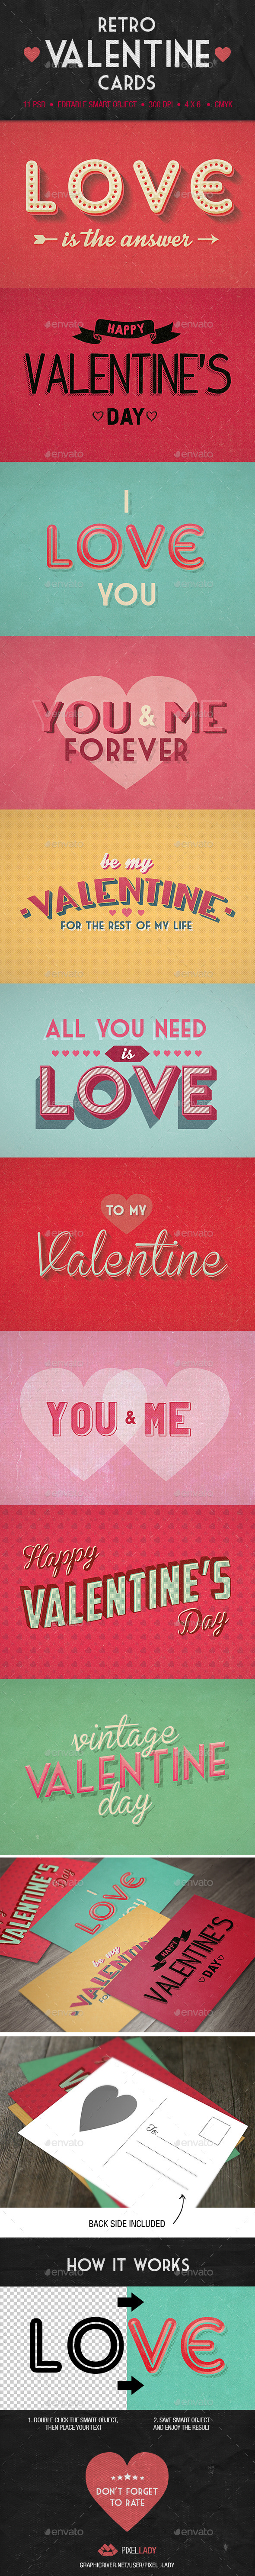 Retro Valentine Cards